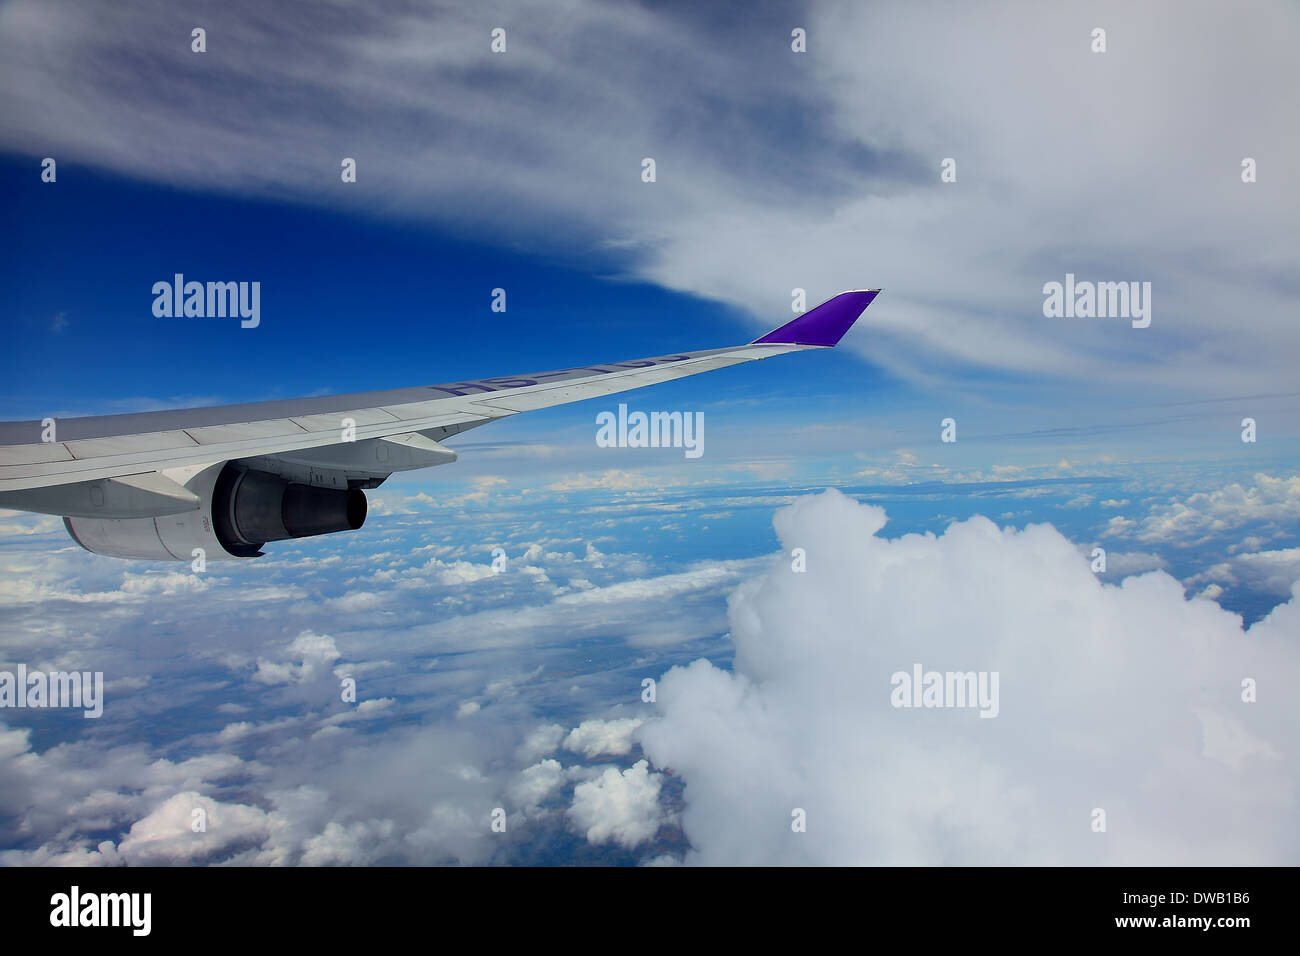 Jet plane engine wing sky clouds - Stock Image